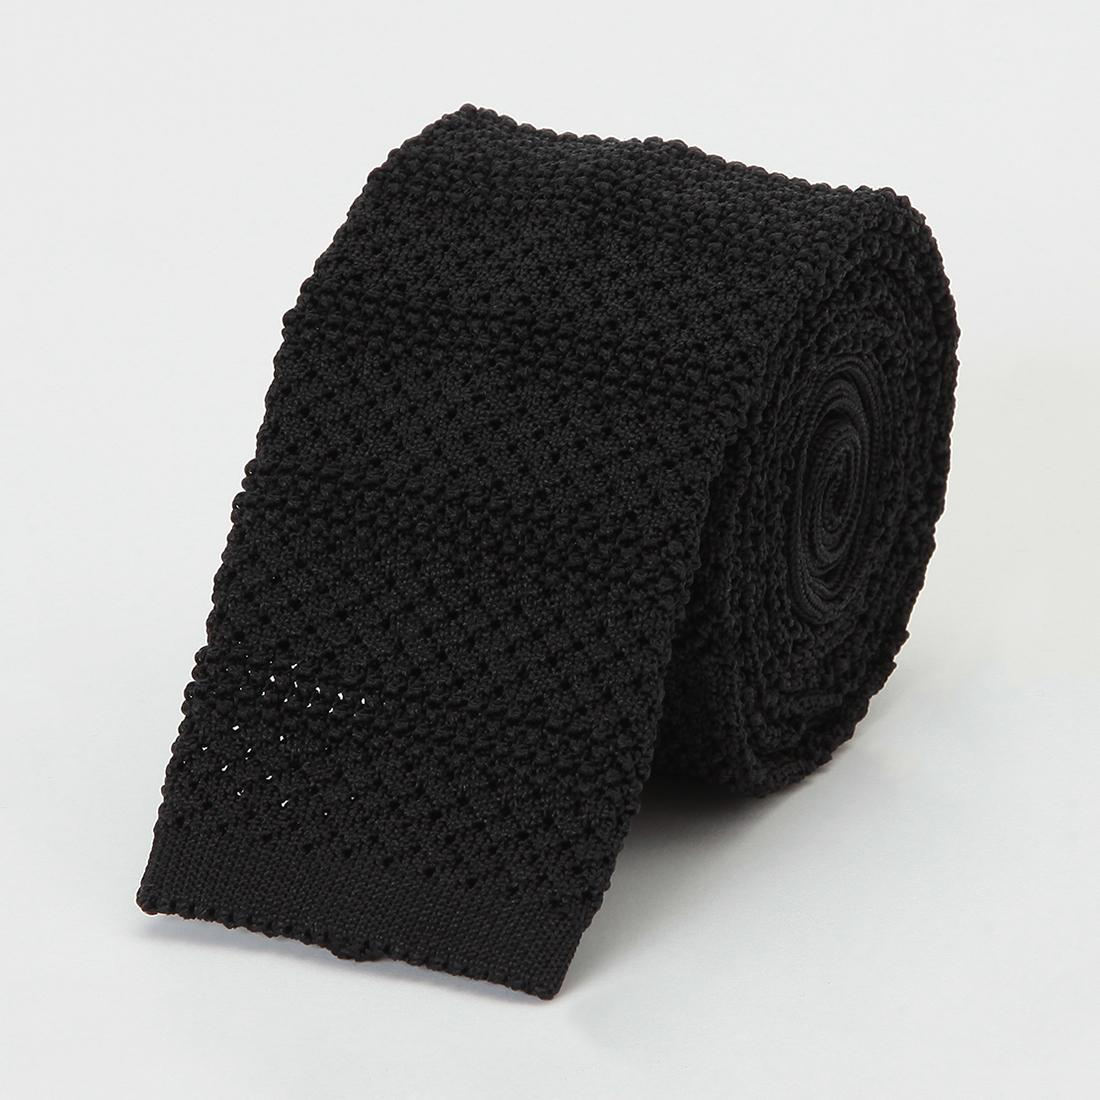 Barneys New York Silk Stripe Knit Tie 2011117: Black